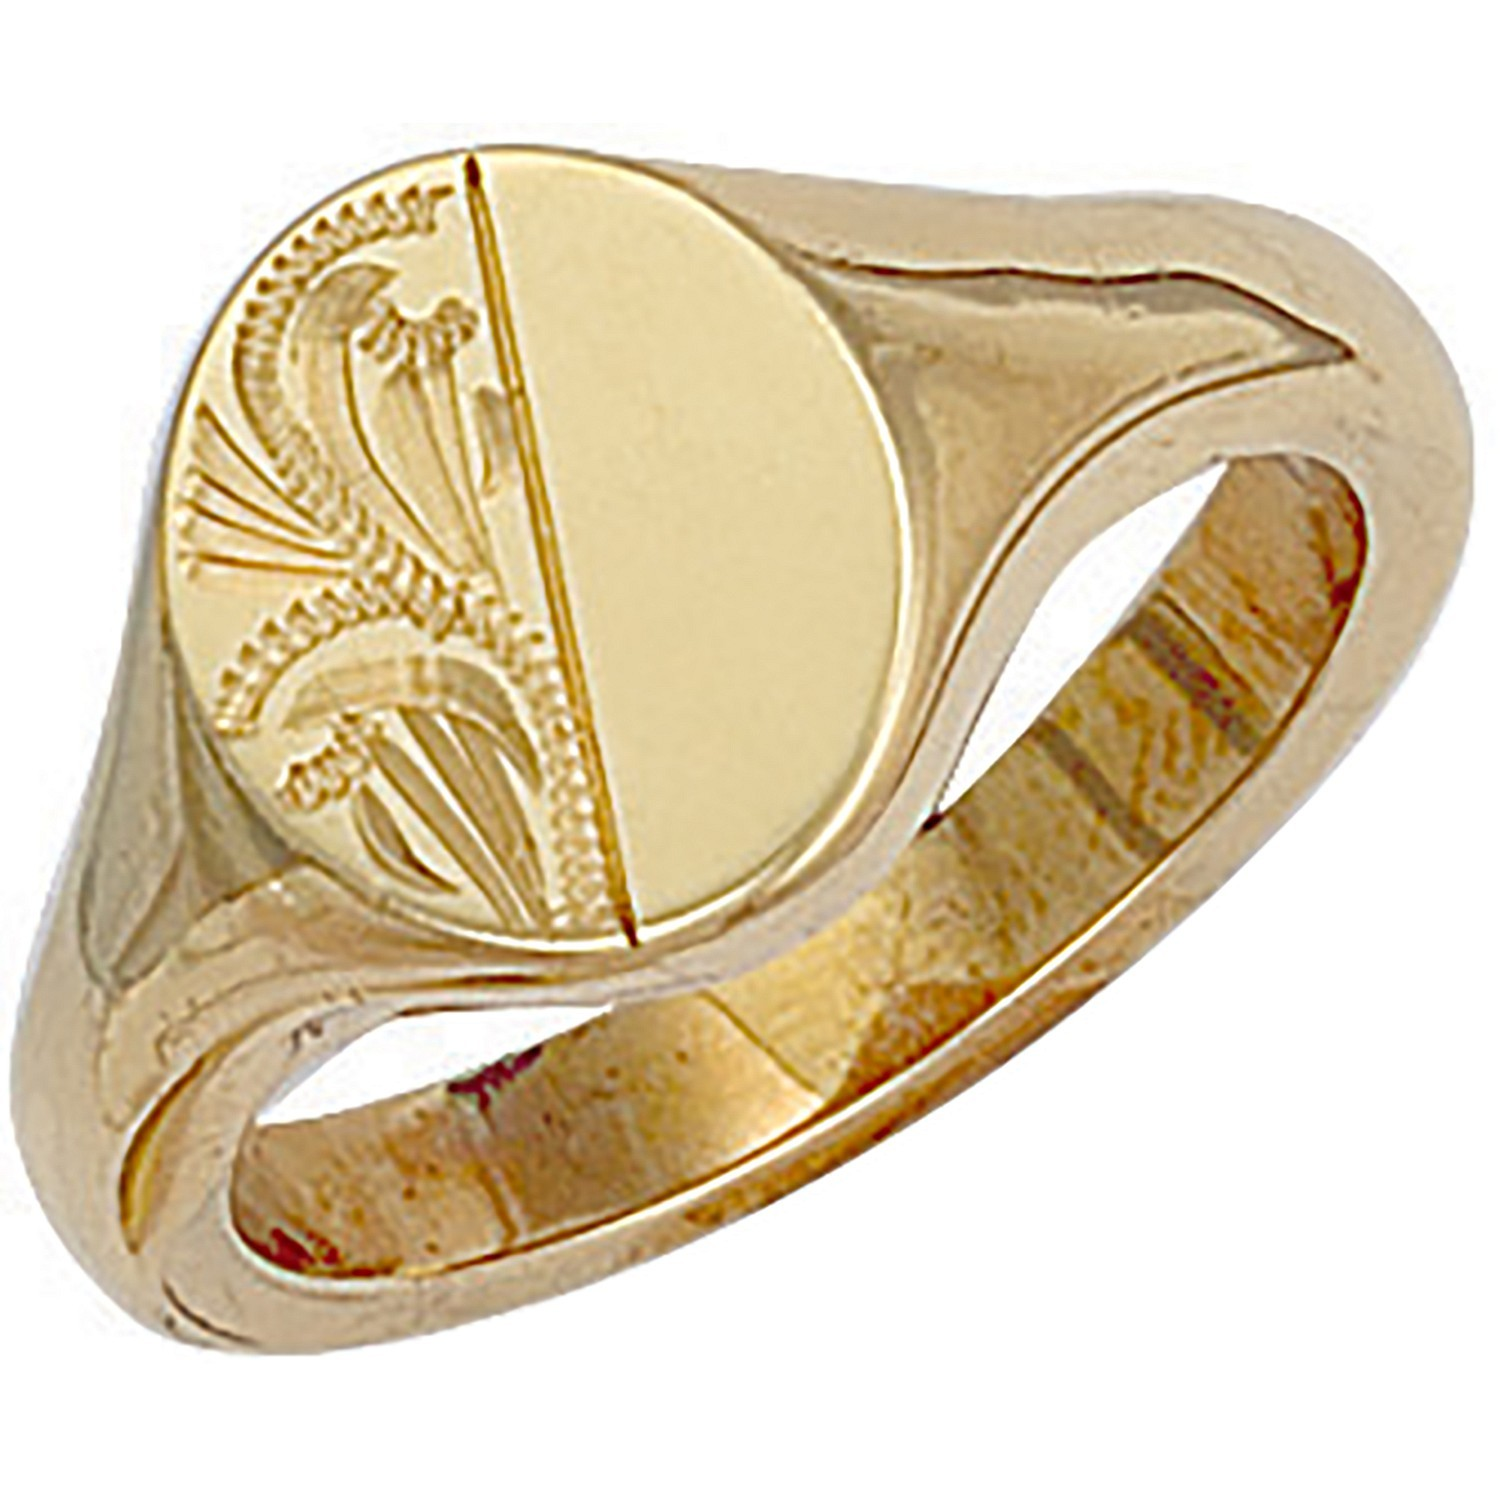 Y/G Engraved Oval Signet Ring